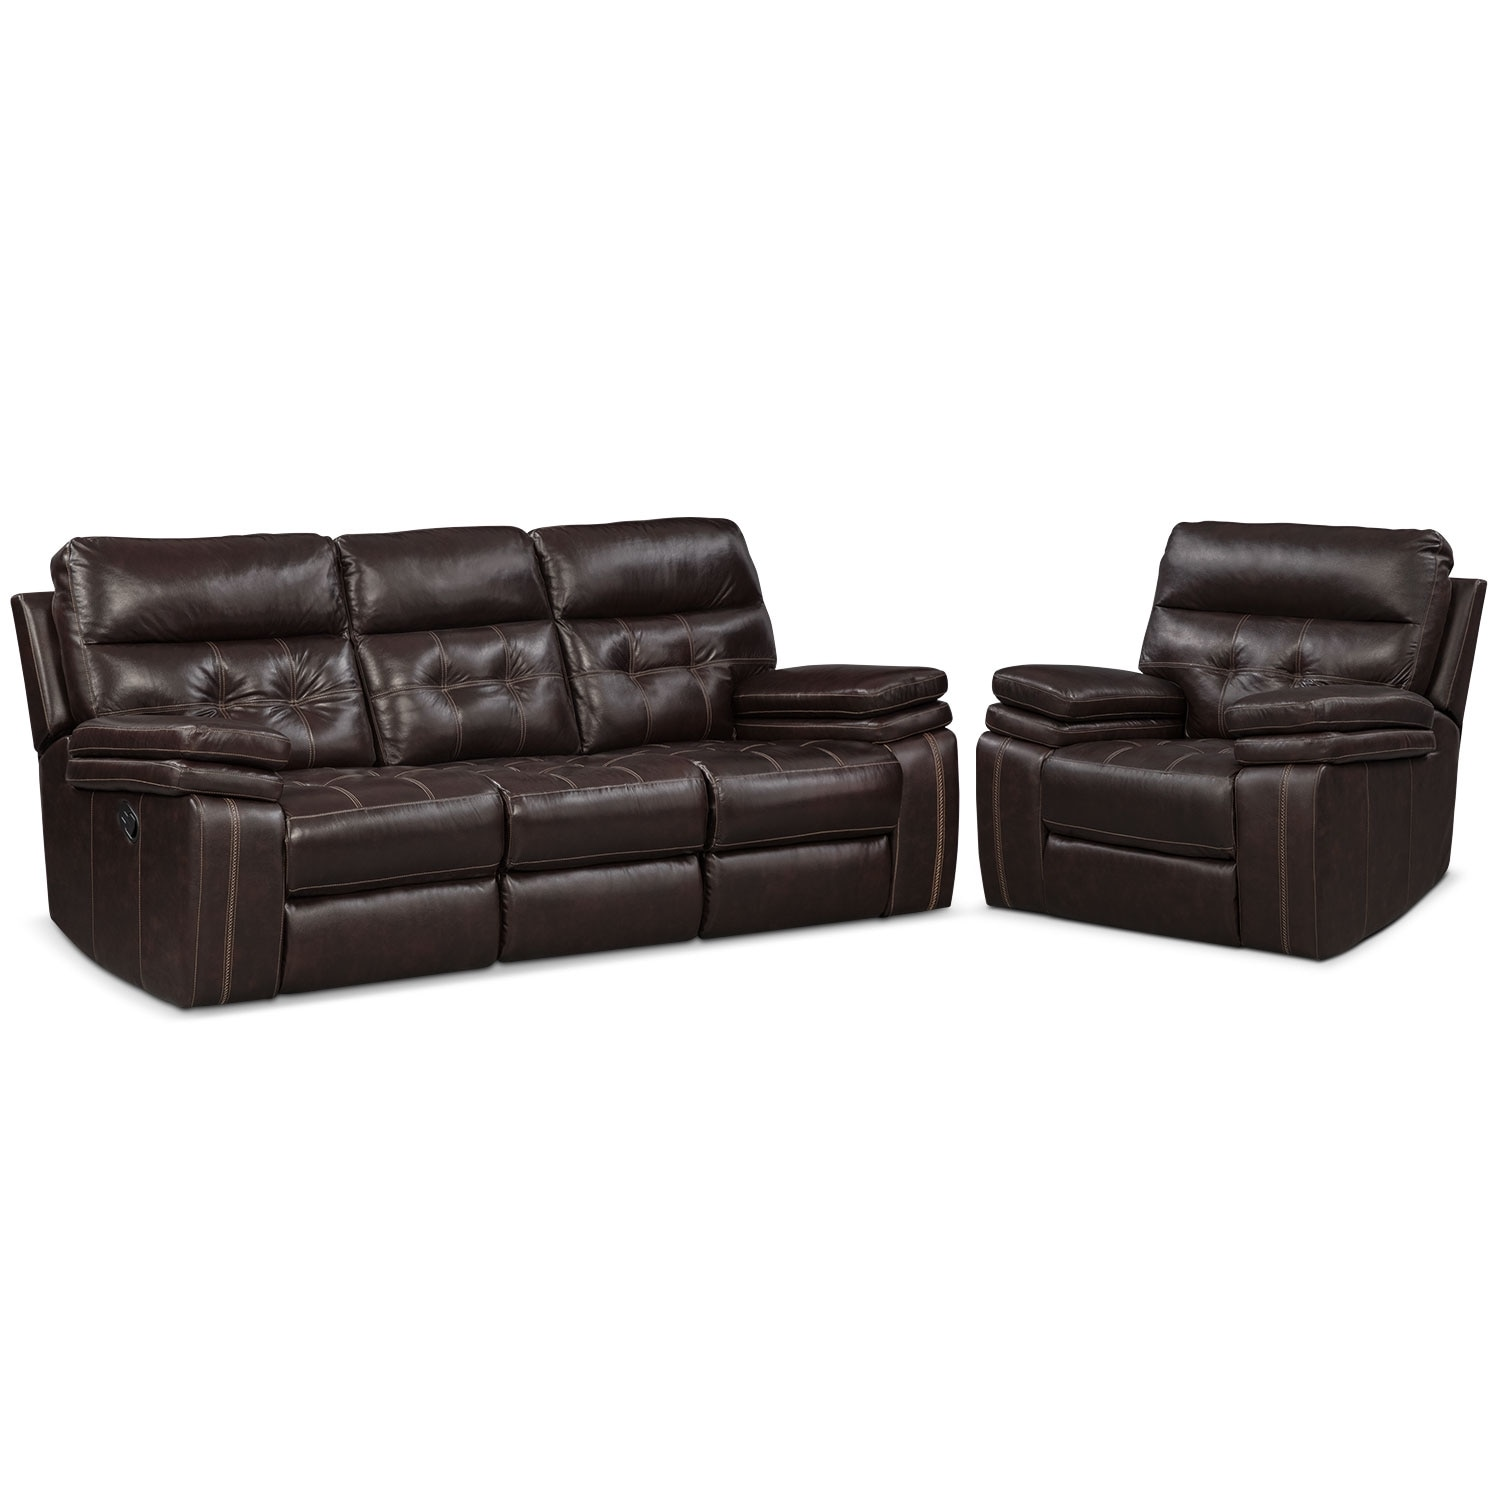 Living Room Furniture - Brisco Brown 2 Pc. Manual Reclining Living Room w/ Recliner